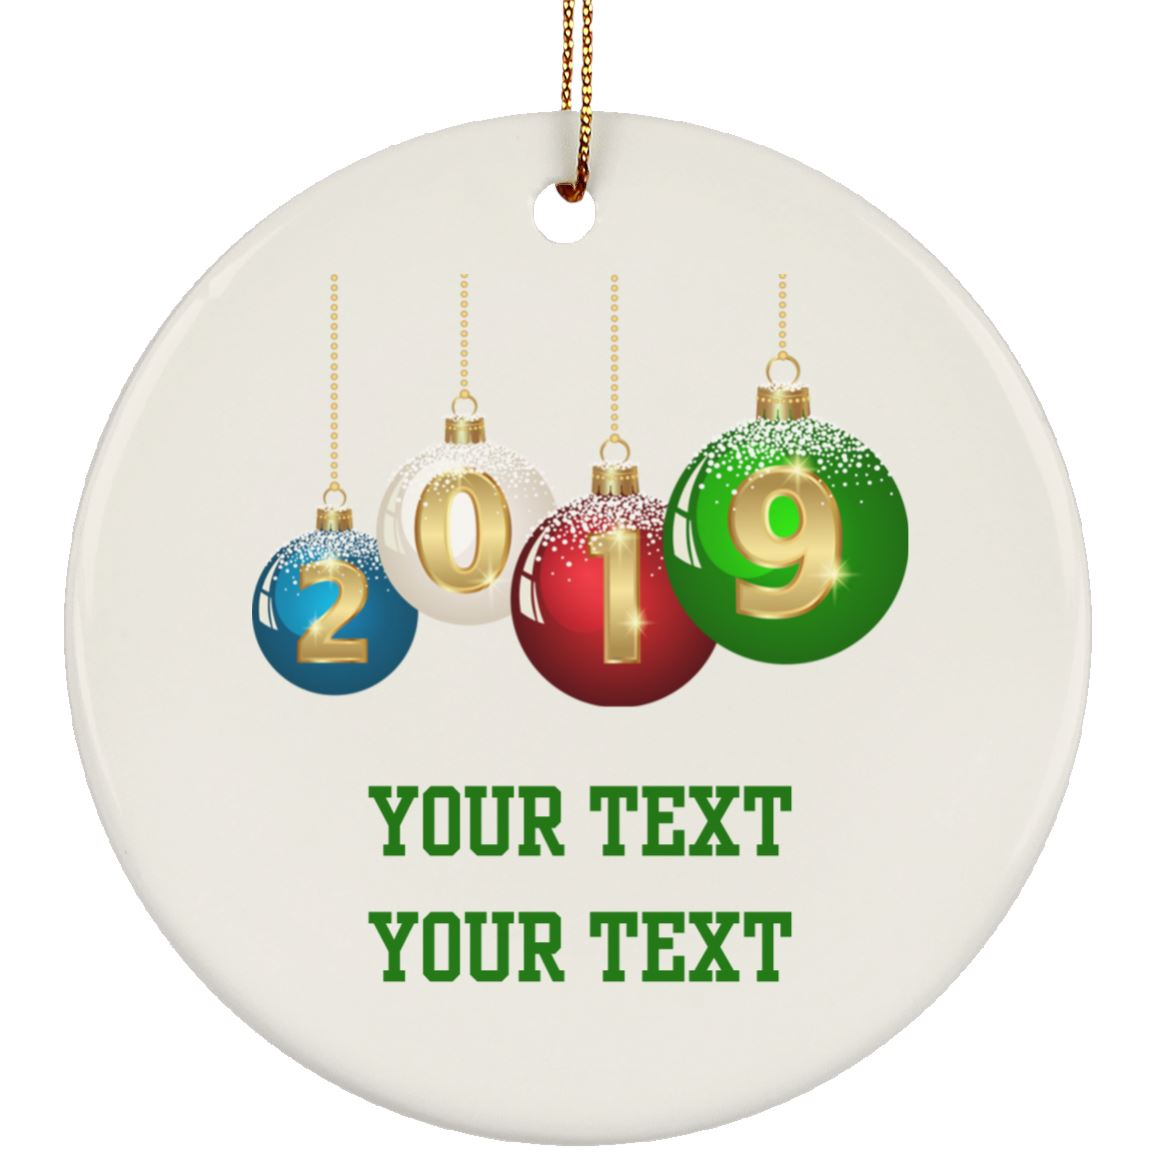 2019 Christmas Ornaments - Personalize